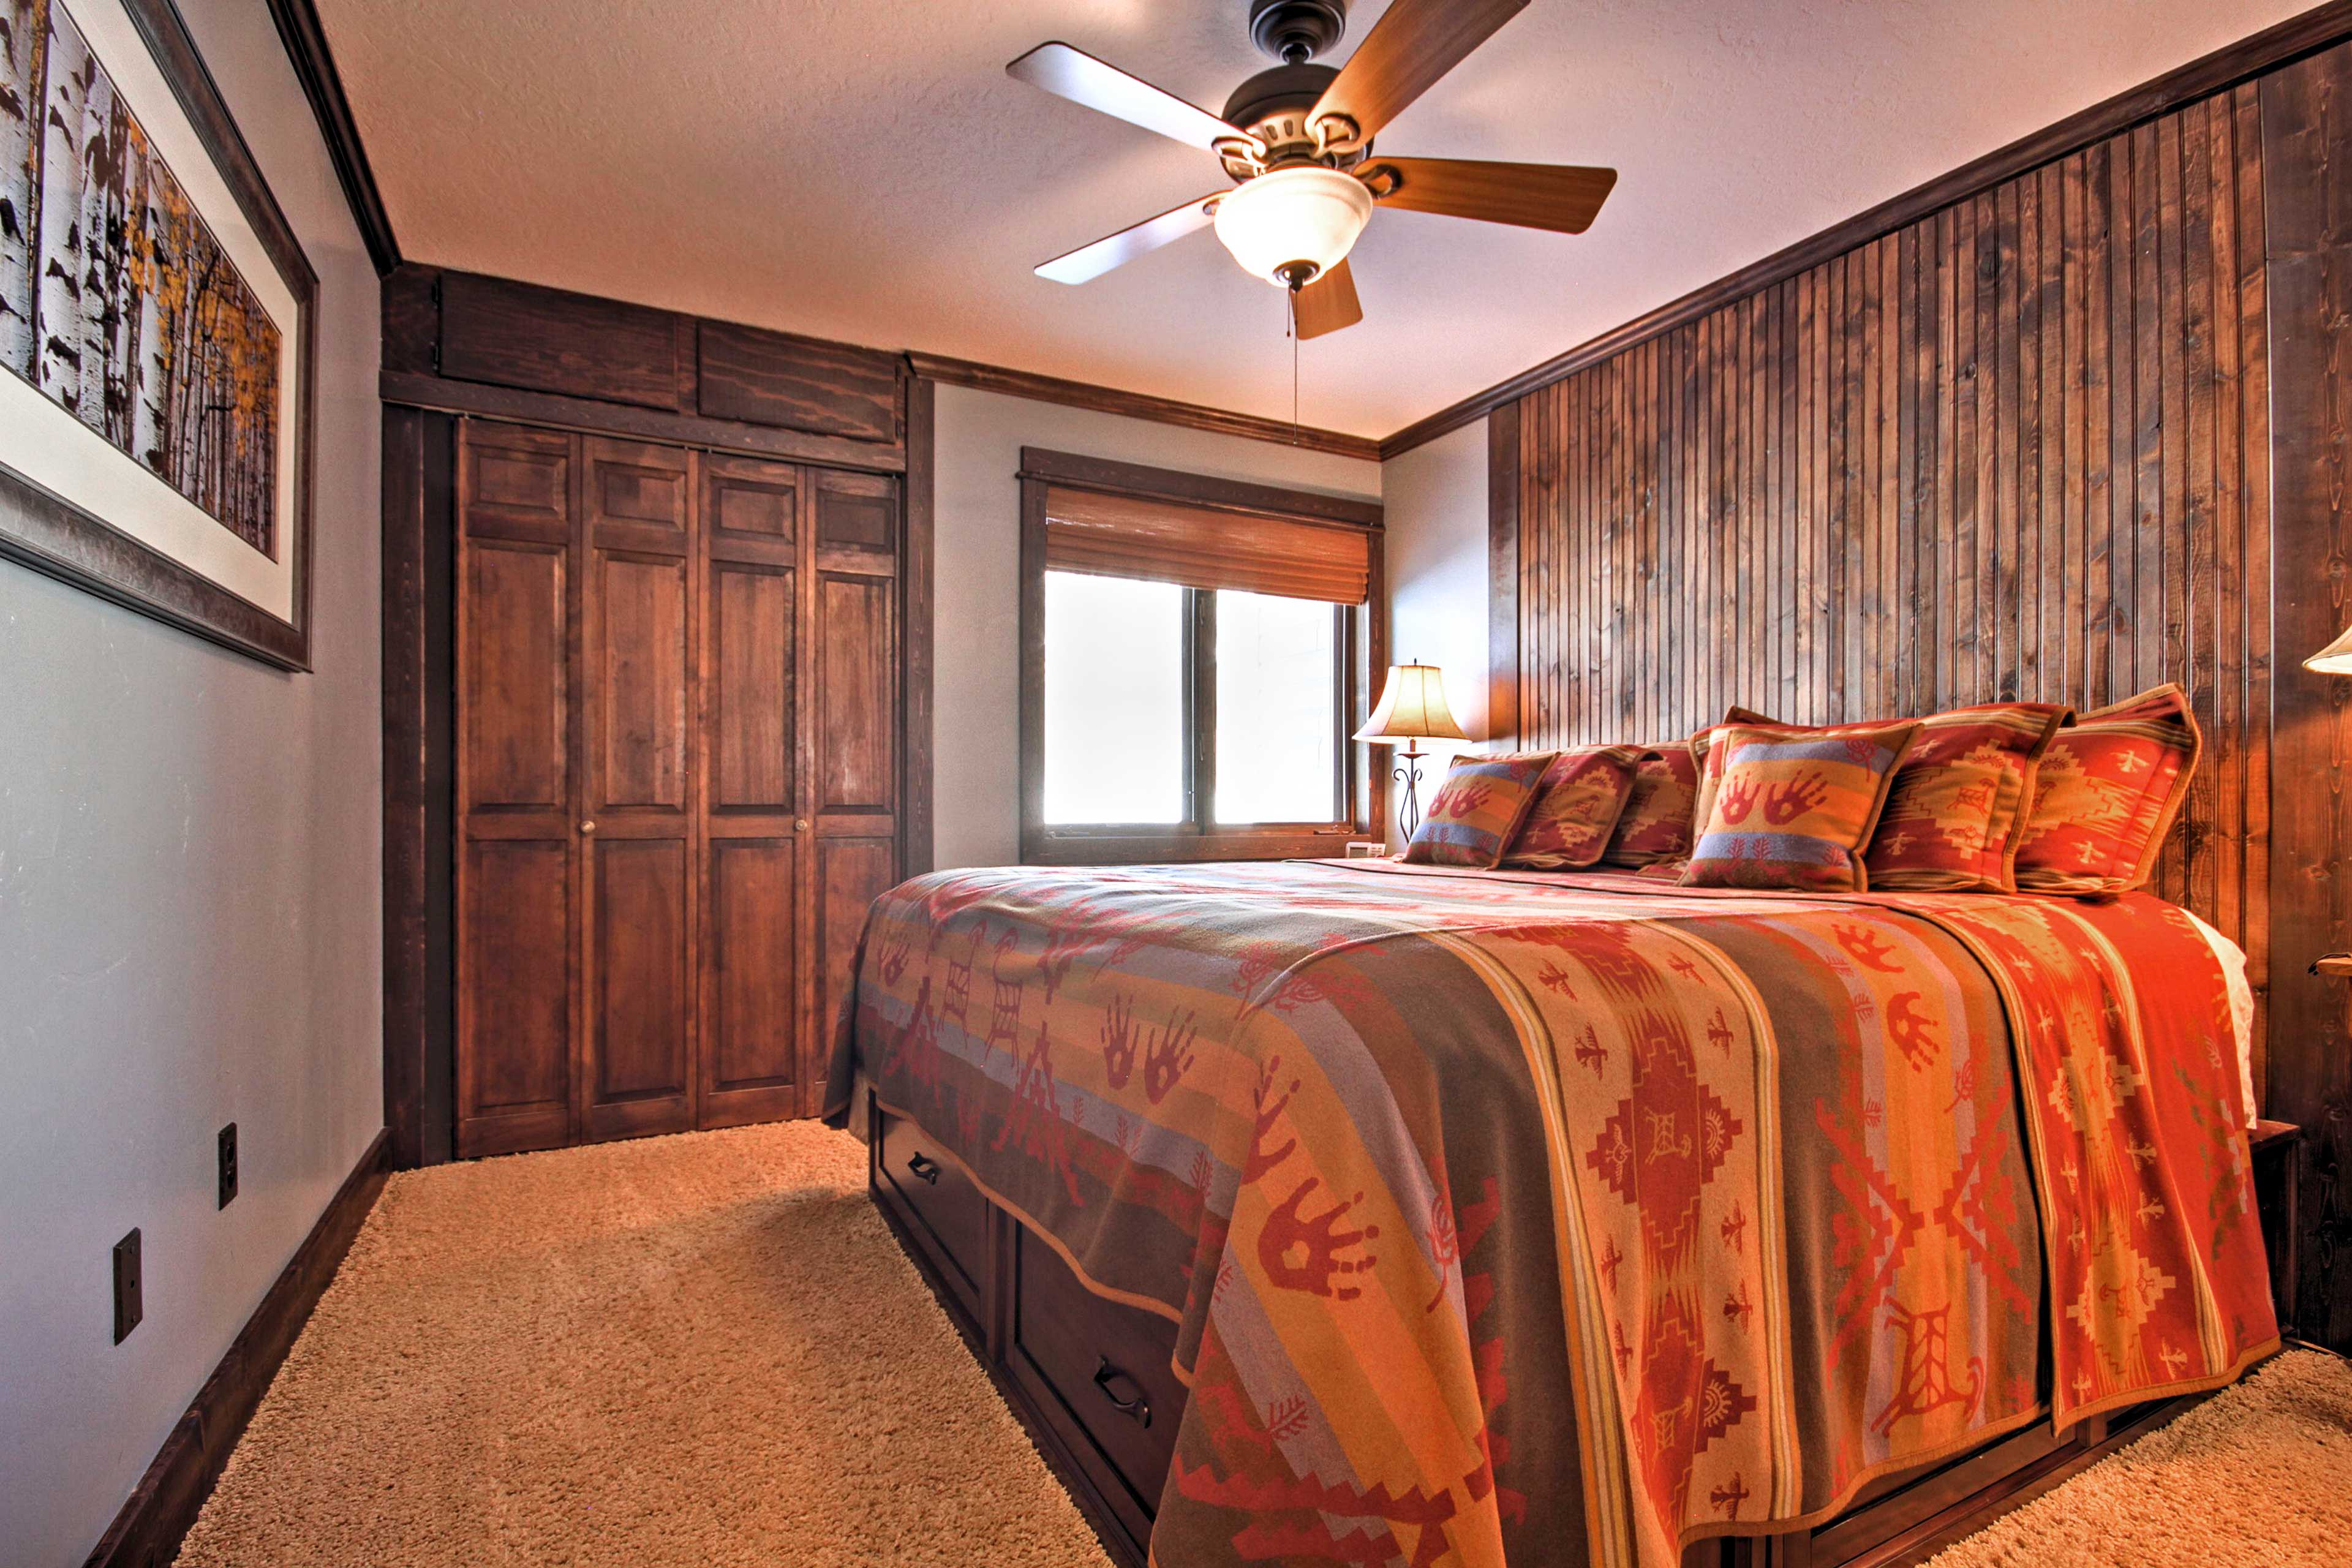 The master bedroom features a California king bed.